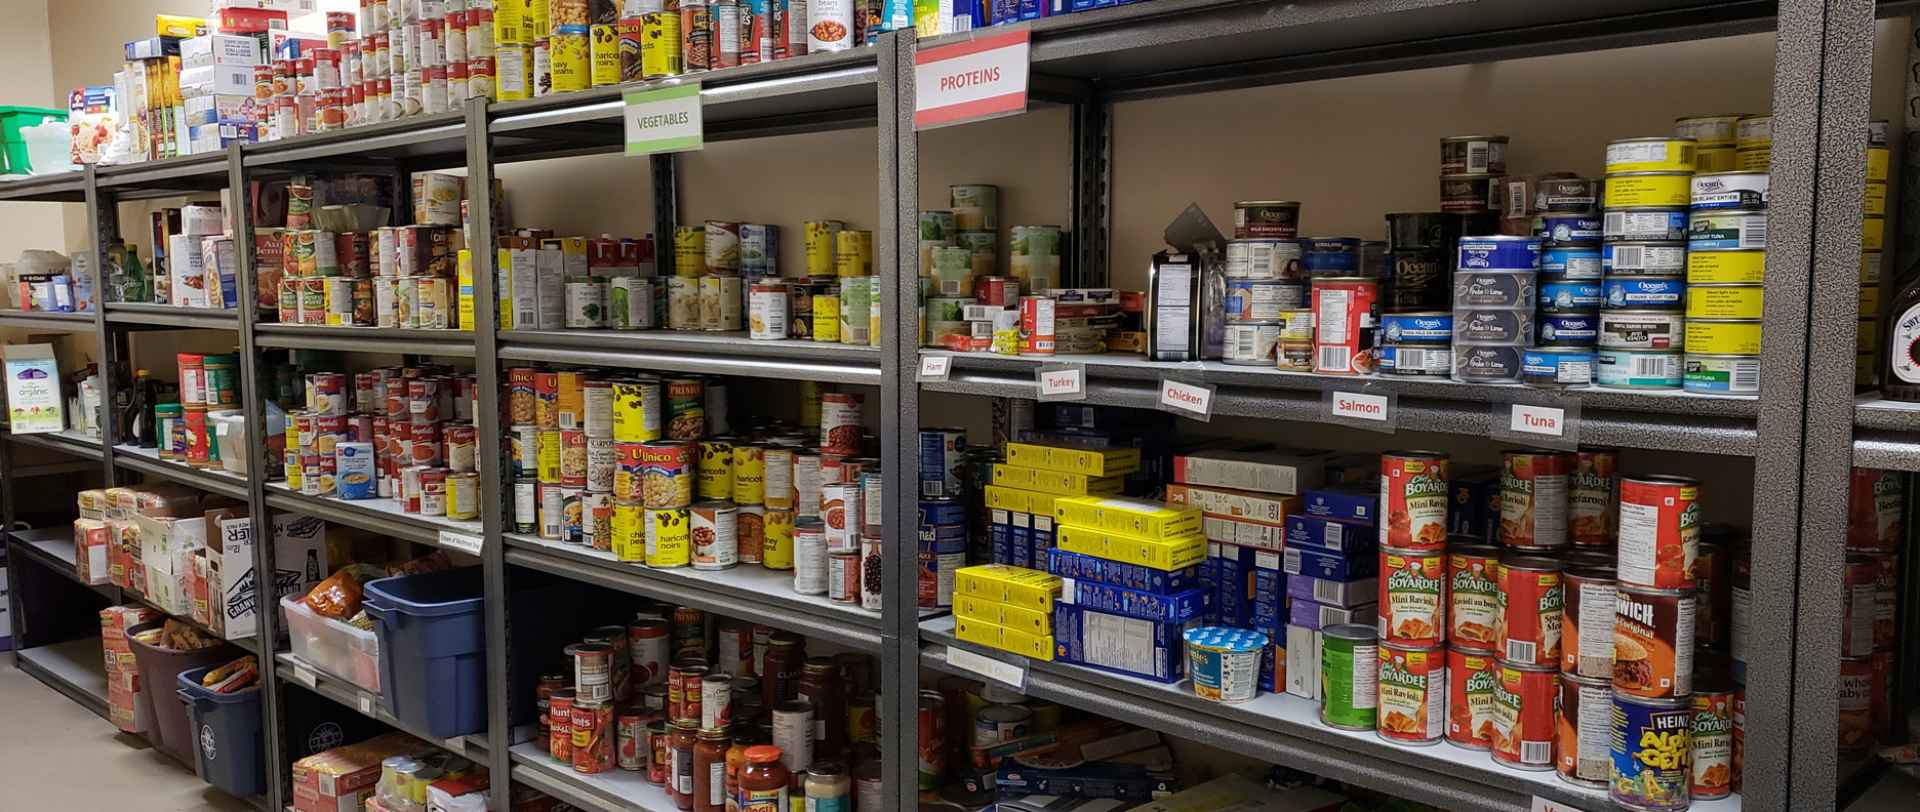 ULSU Food Bank Shelves